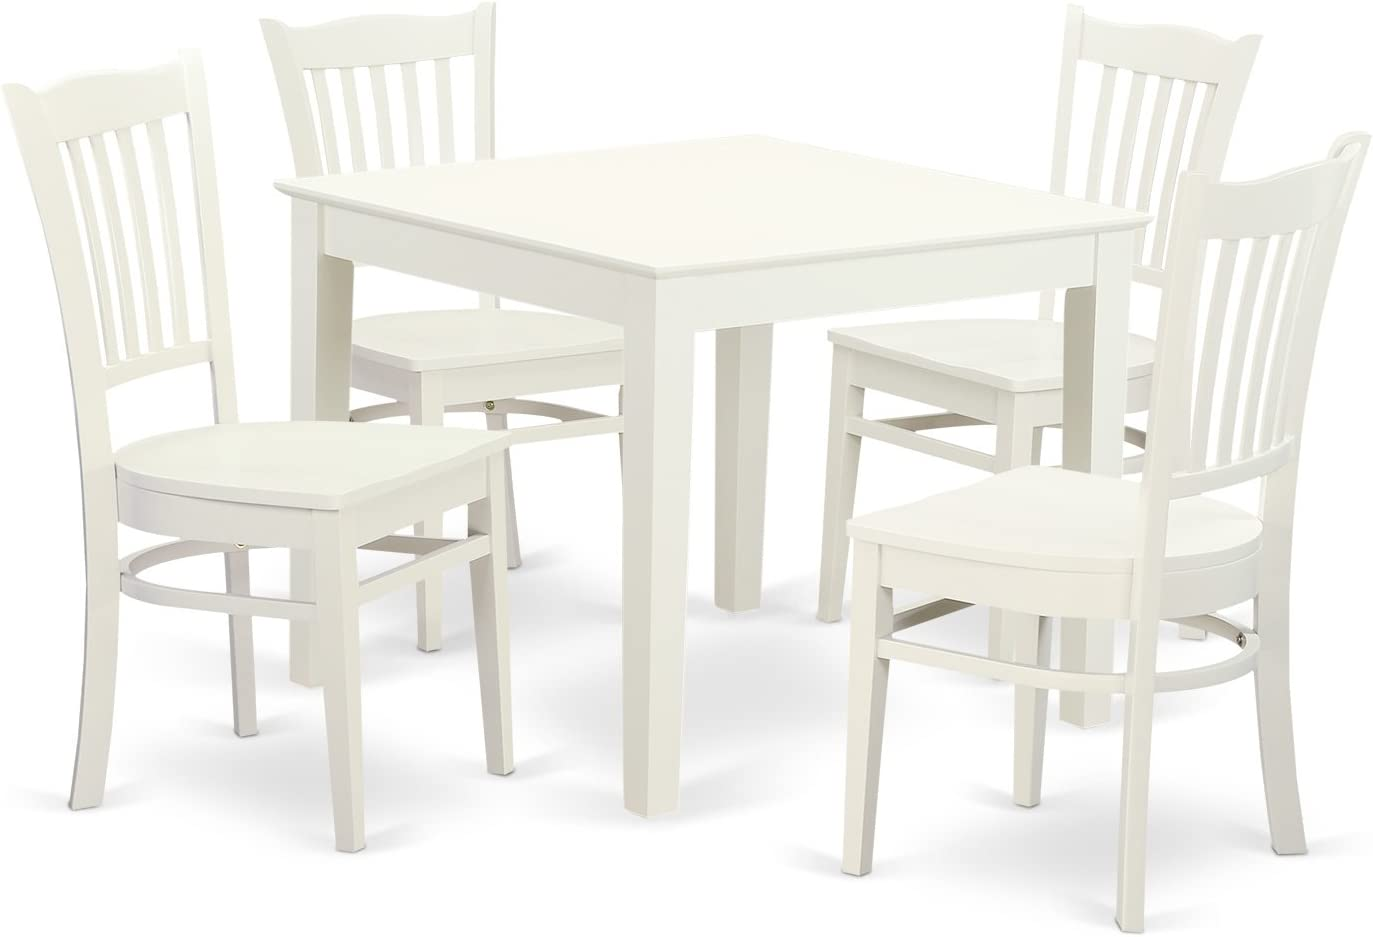 OXGR5-LWH-W 5 PC Kitchen Table and 4 Wood Dining Chairs in Linen White